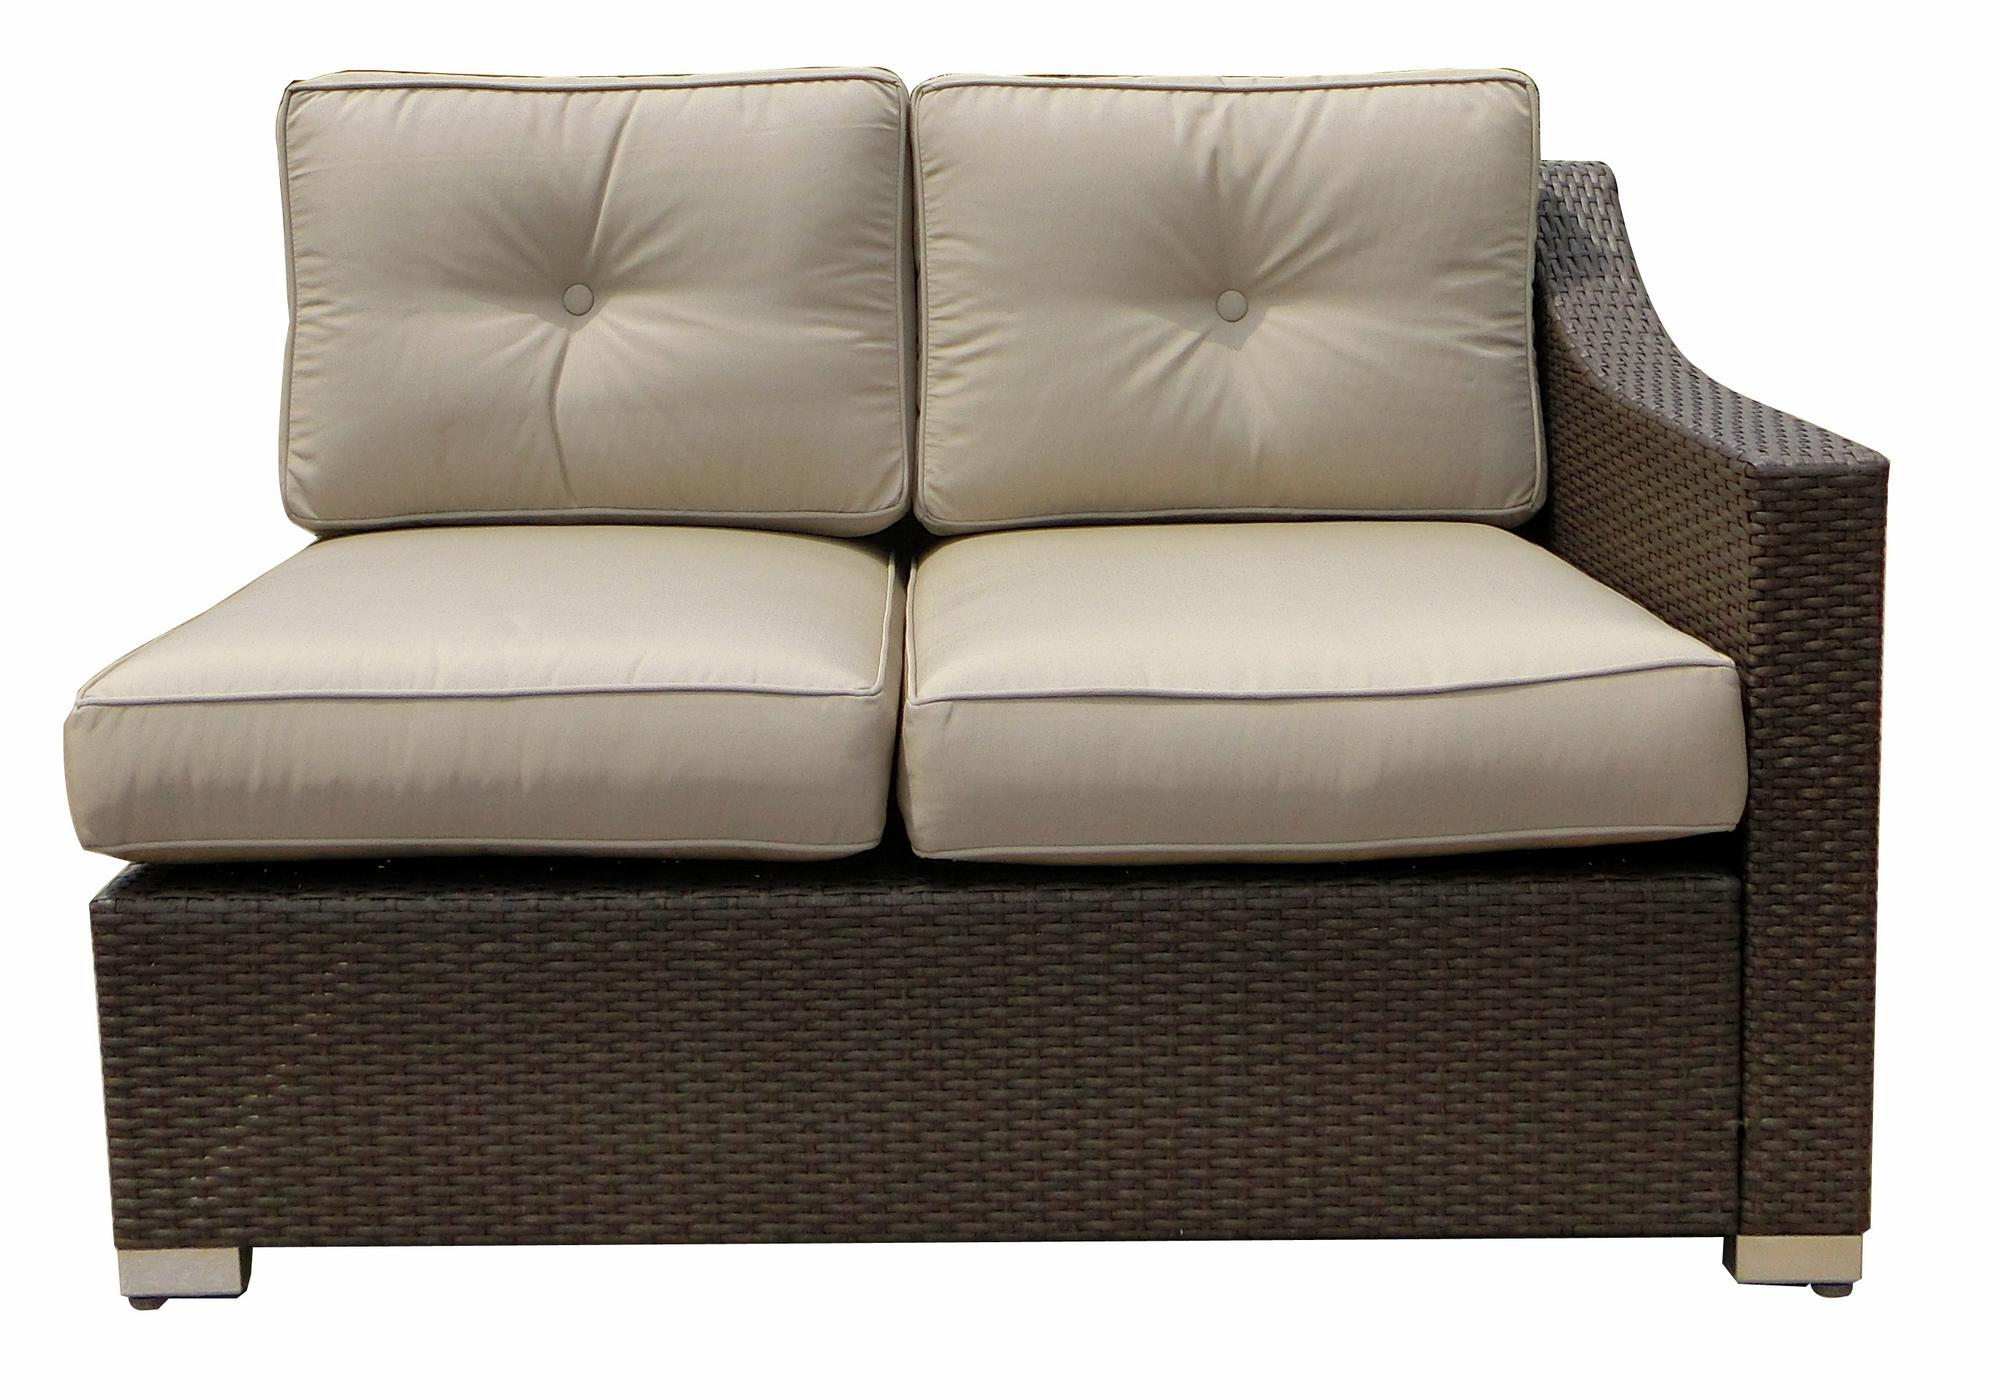 JJ Designs SB-3775-07 South Beach Wicker Patio Left Arm Sectional Loveseat